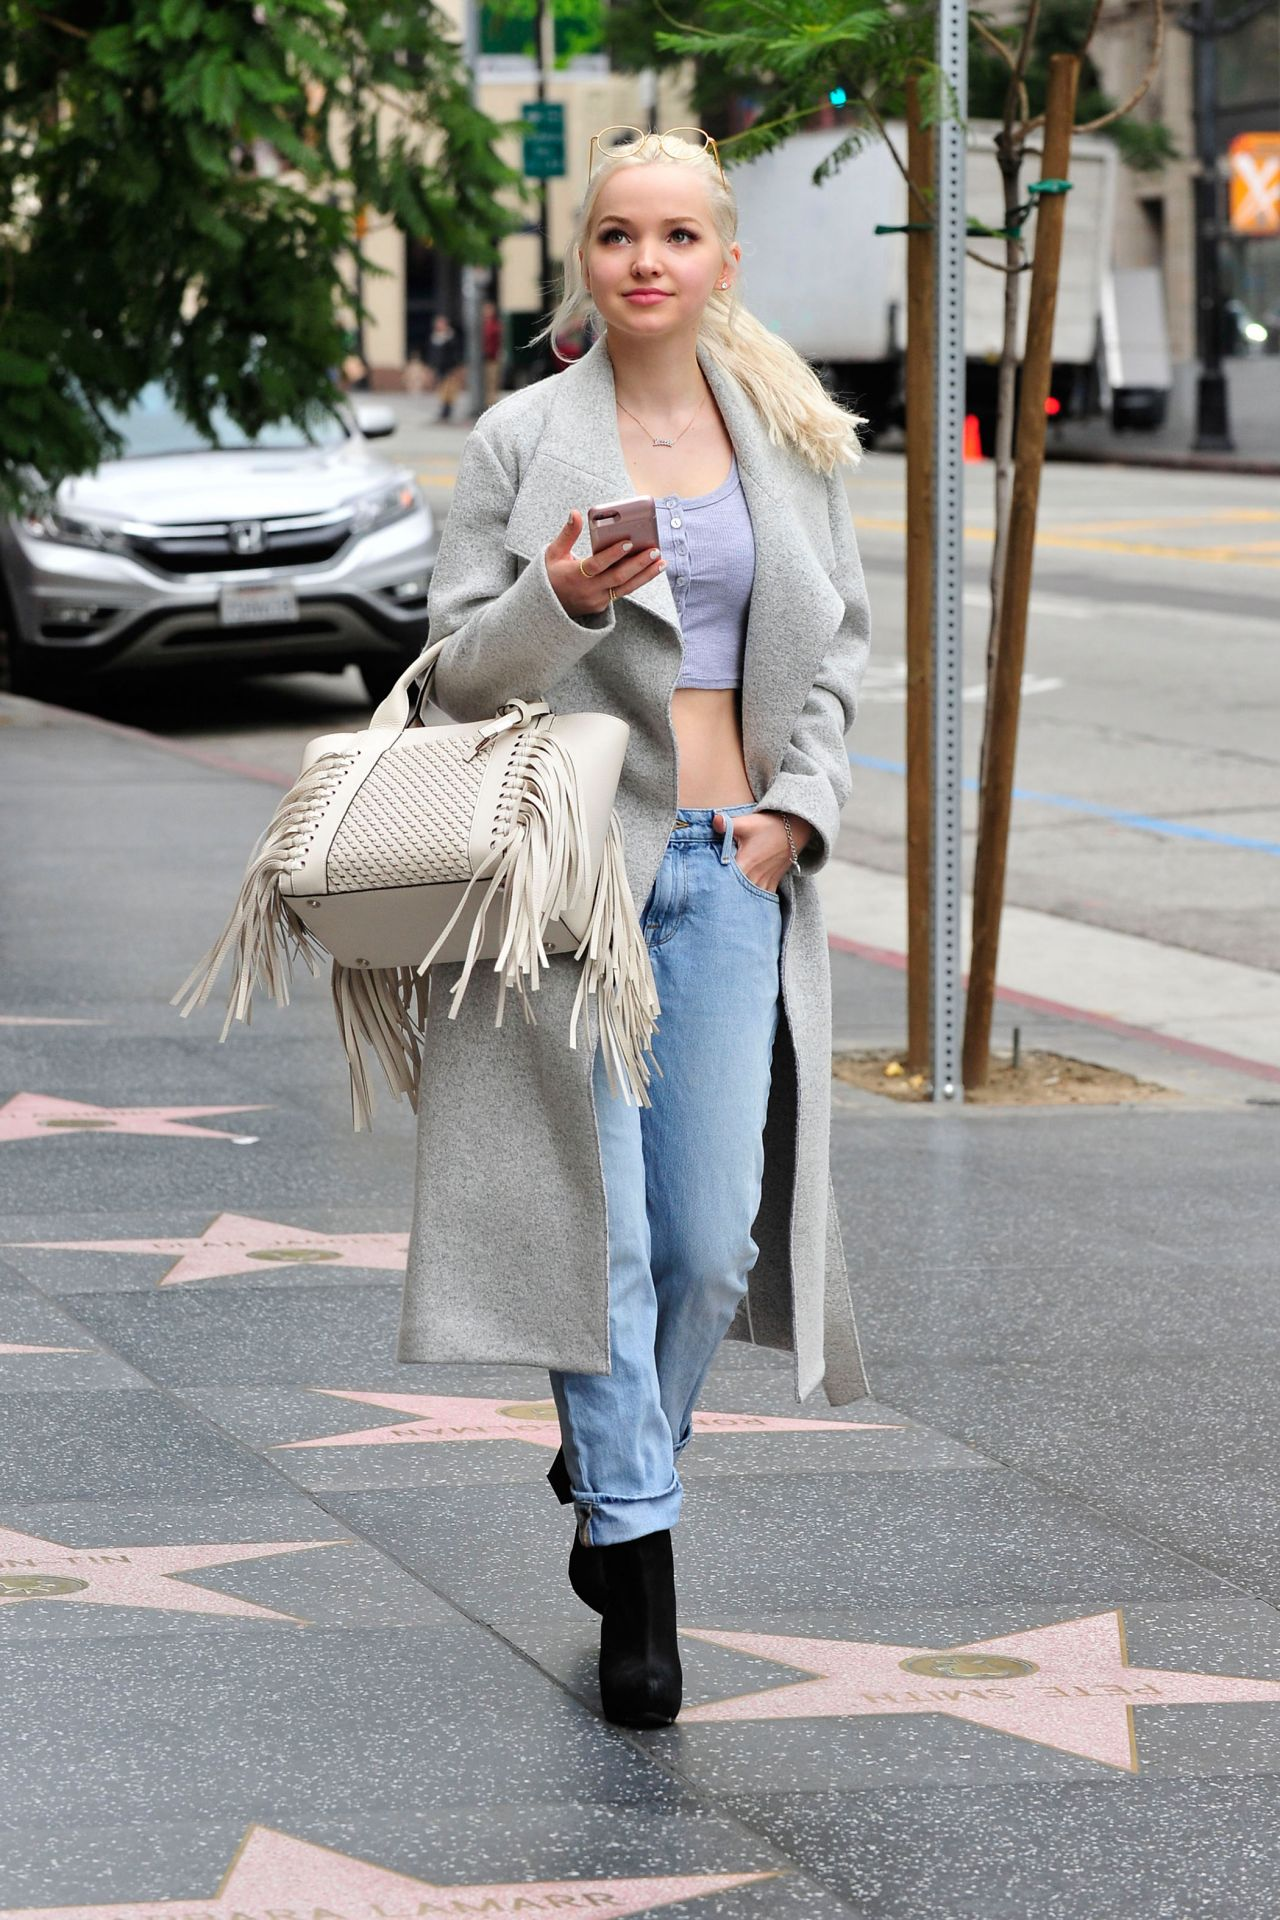 Dove Cameron Leaving A Store On Hollywood Blvd In La 3 6